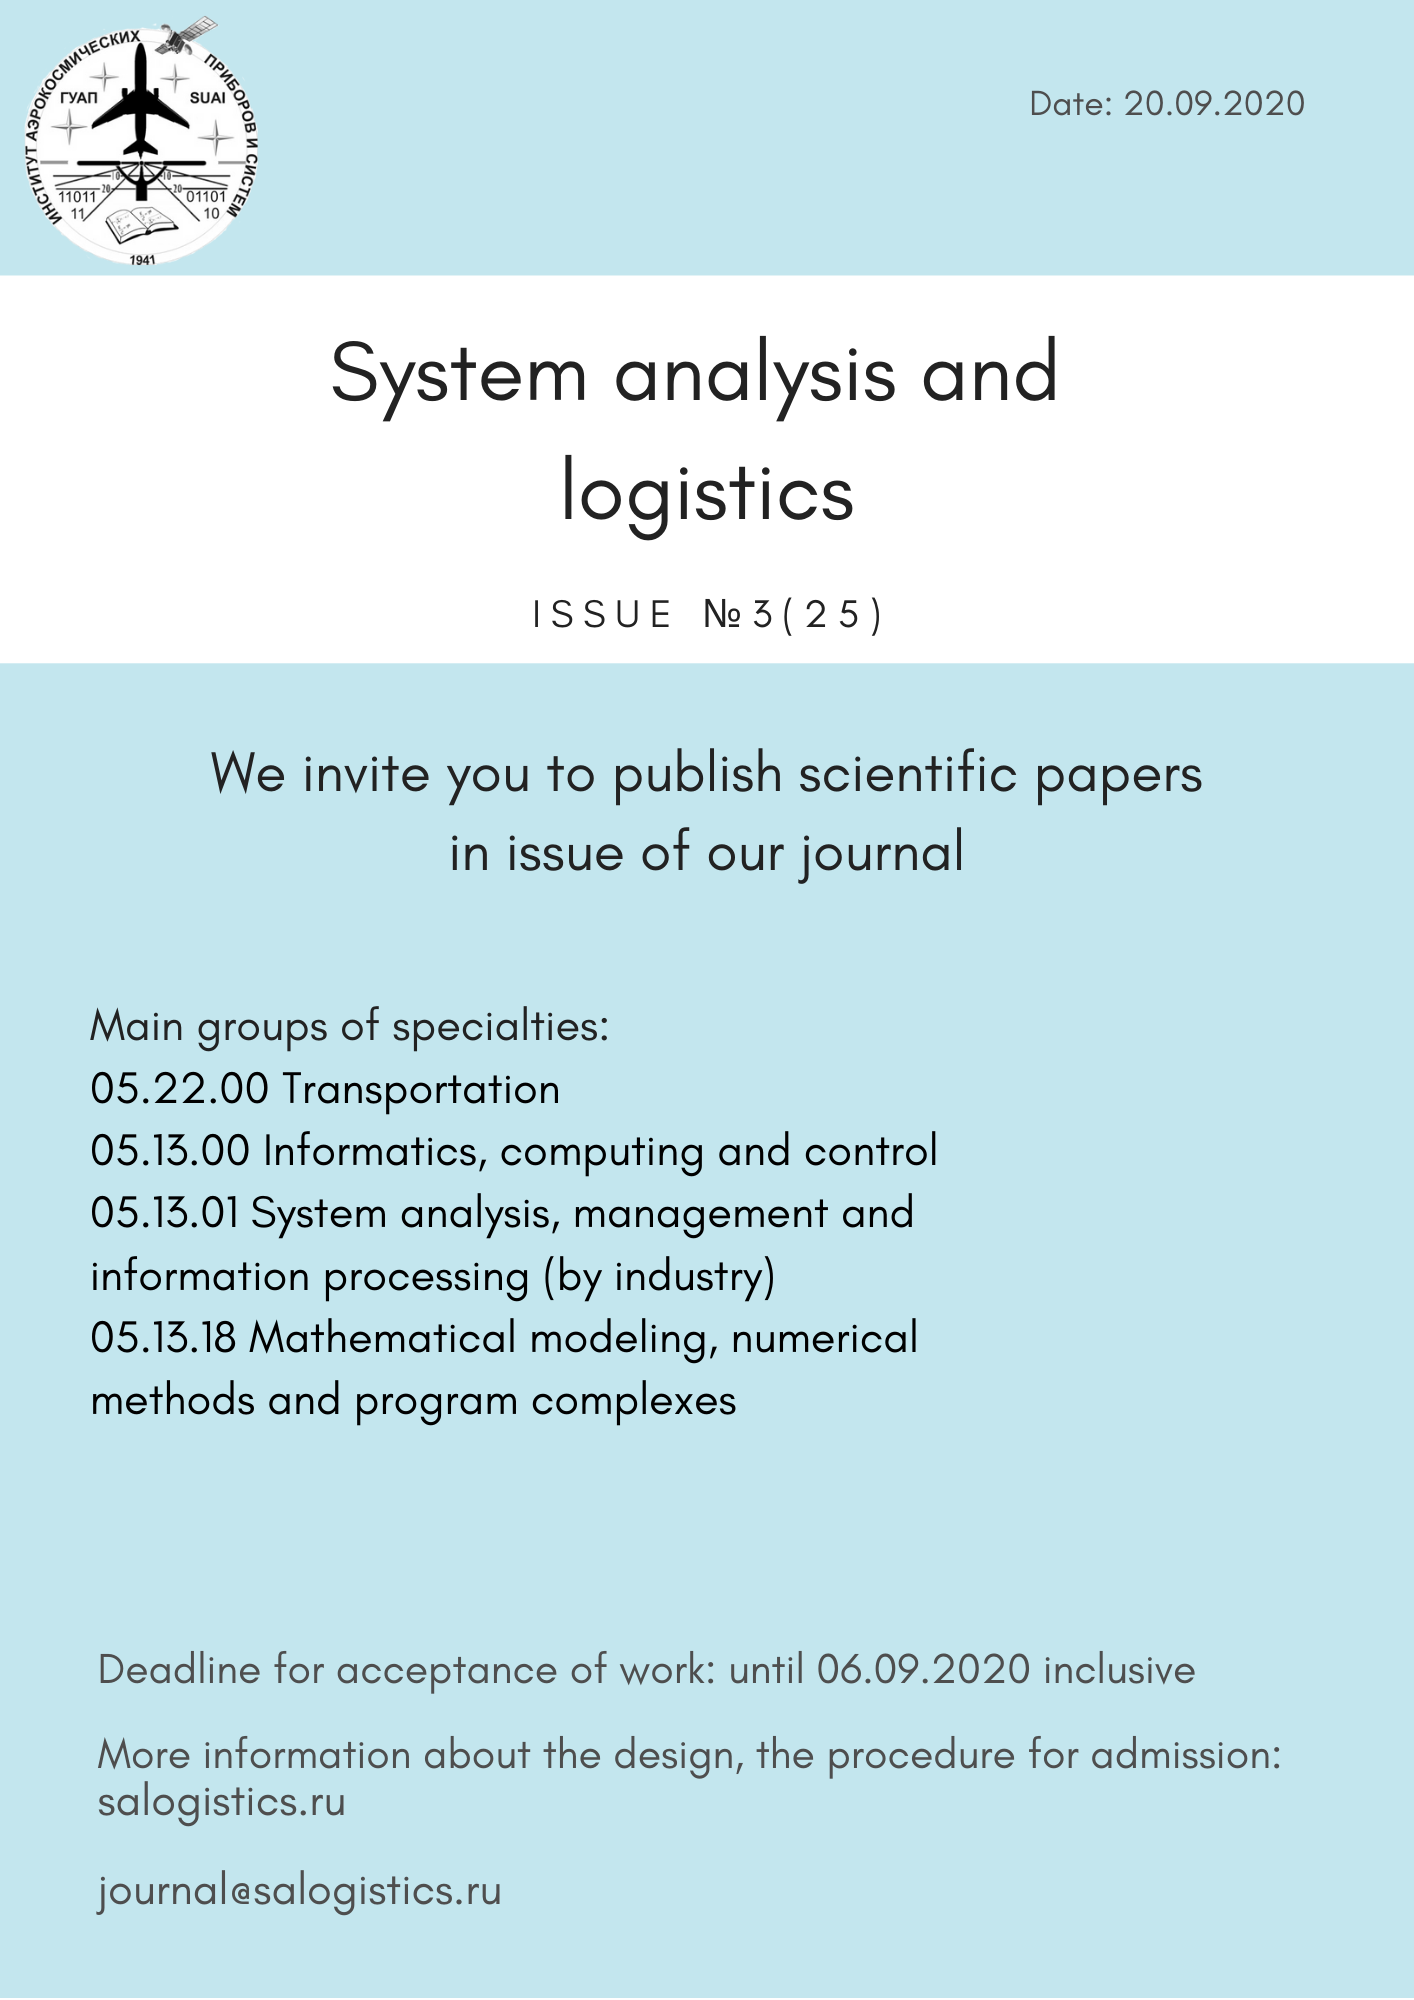 Invitation to publication in the journal System Analysis and Logistics